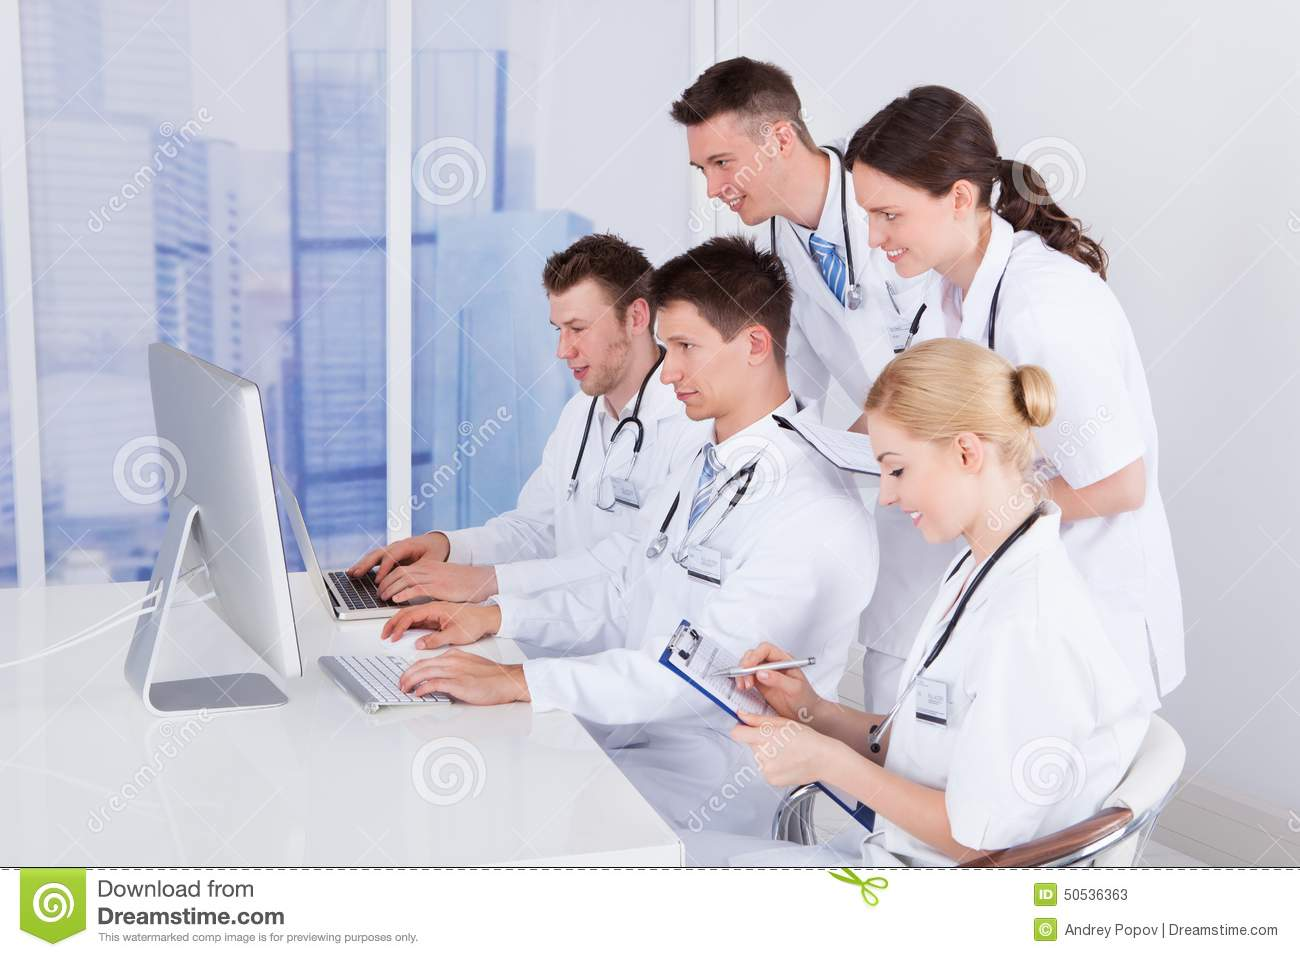 Computer in hospital clipart vector black and white library Group Of Doctors Working Together Stock Photo - Image: 46840644 vector black and white library